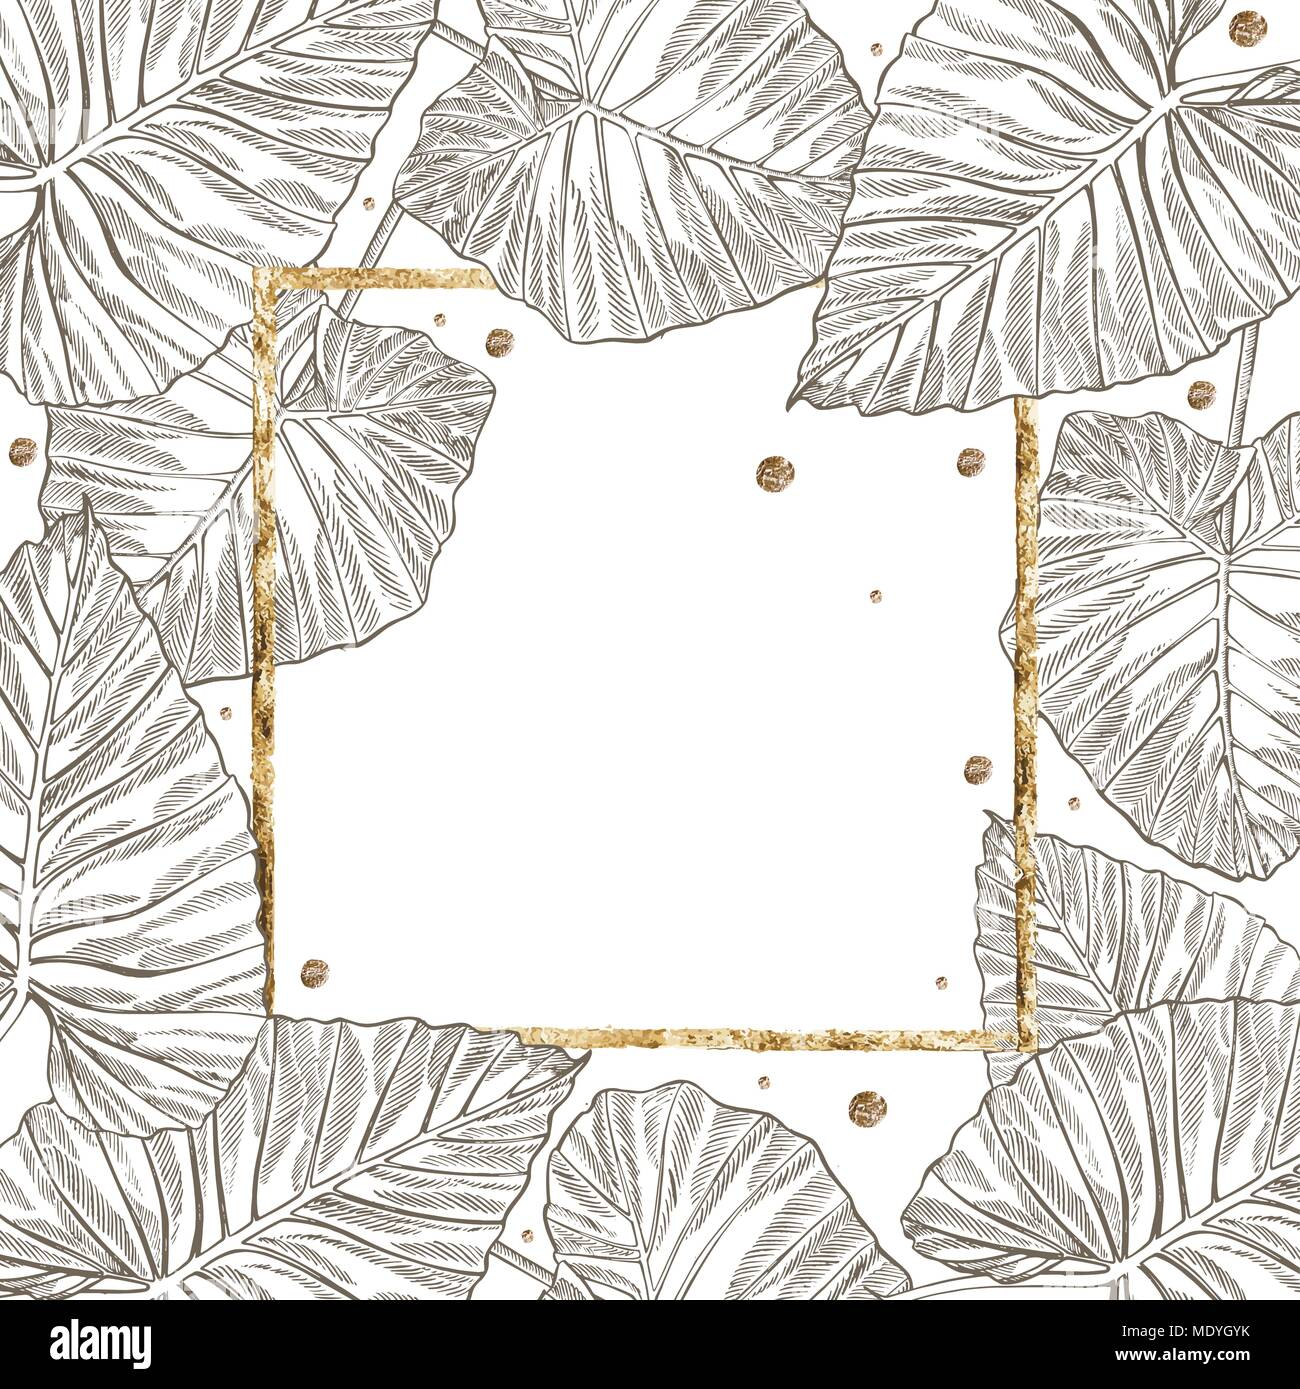 Summer tropical leaves vector design with gold frame floral summer tropical leaves vector design with gold frame floral background illustration invitation or card design with jungle leaves stopboris Image collections